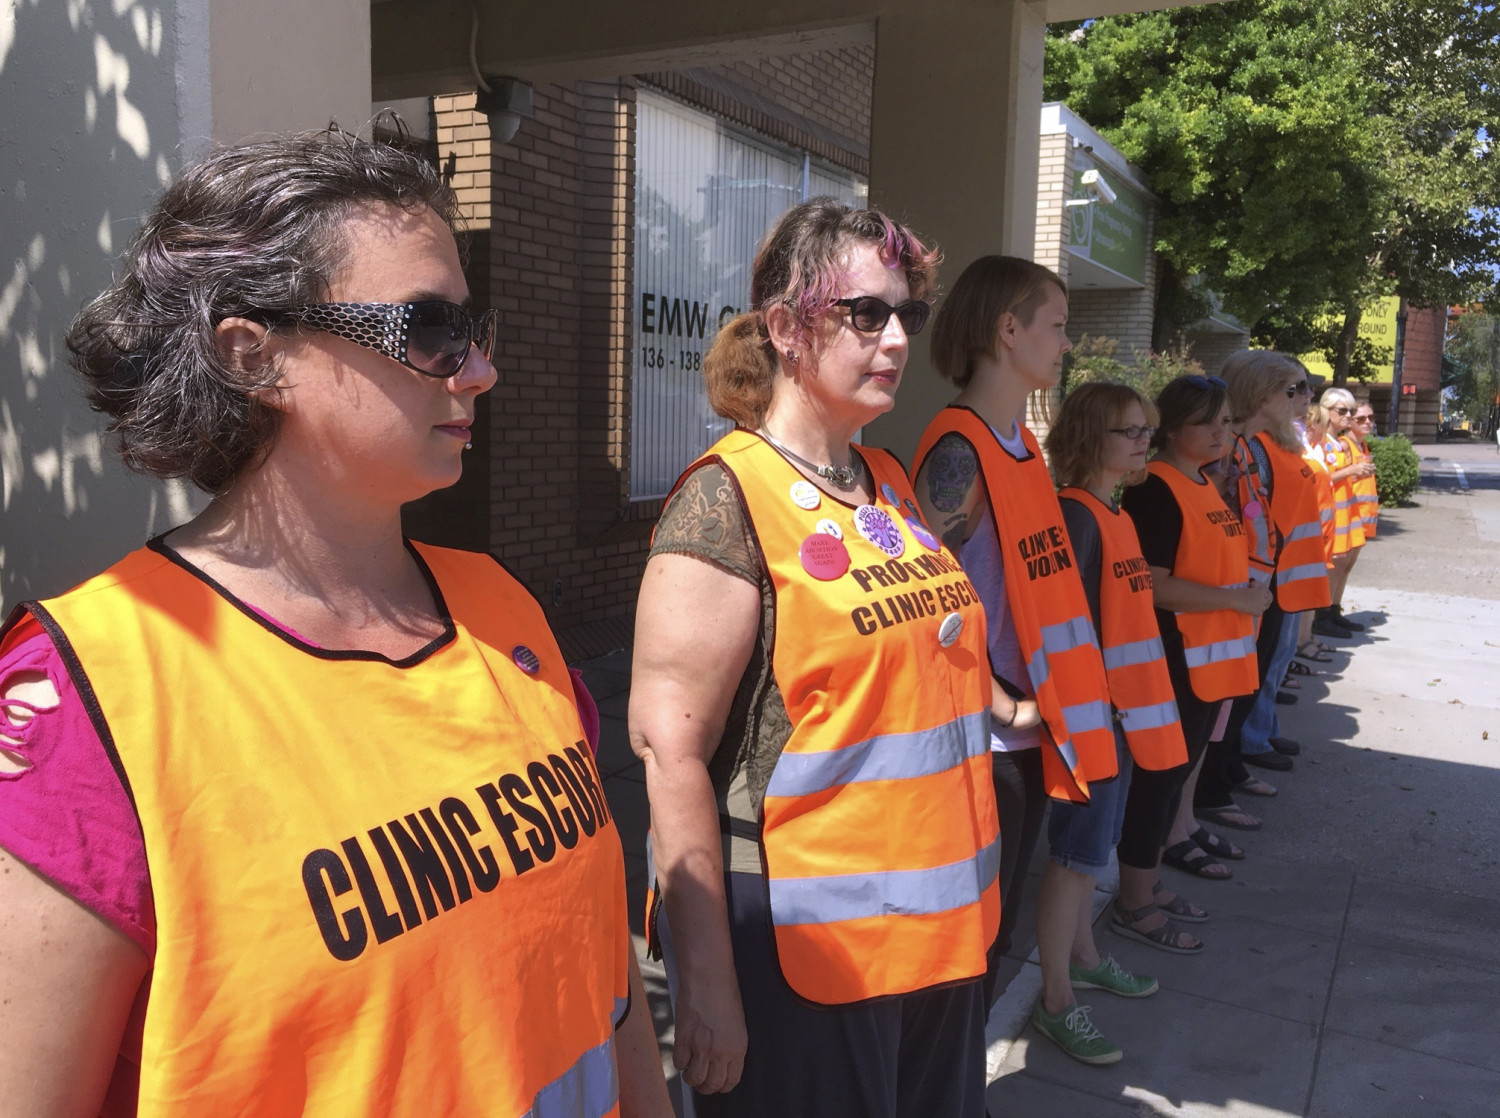 In this July 17, 2017 file photo, escort volunteers line up outside the EMW Women's Surgical Center